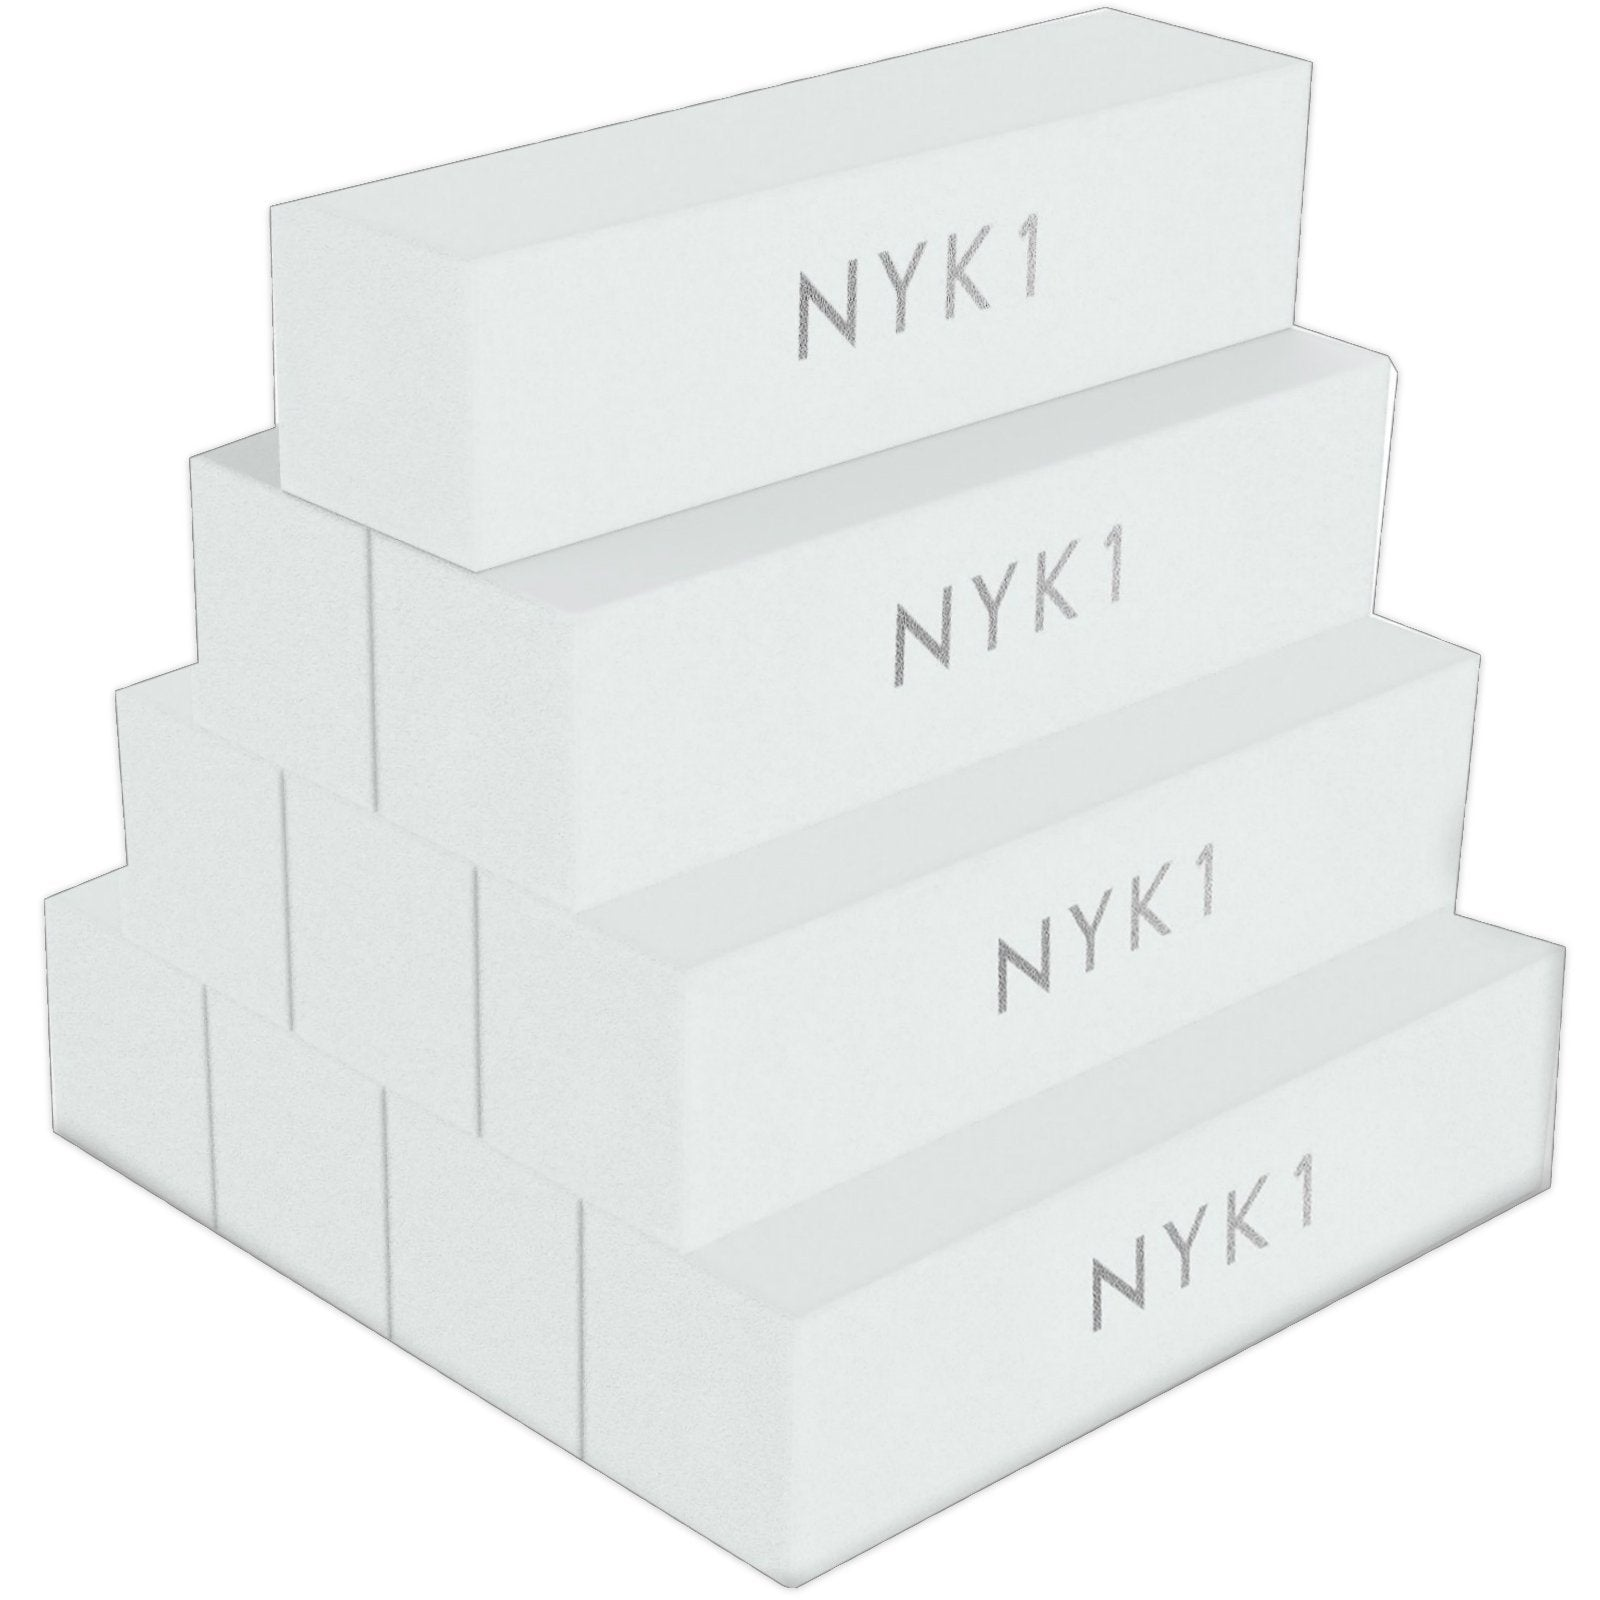 NYK1 White Acrylic Nail Buffer Buffing Sanding Block Files Salon Professional 10 Pack